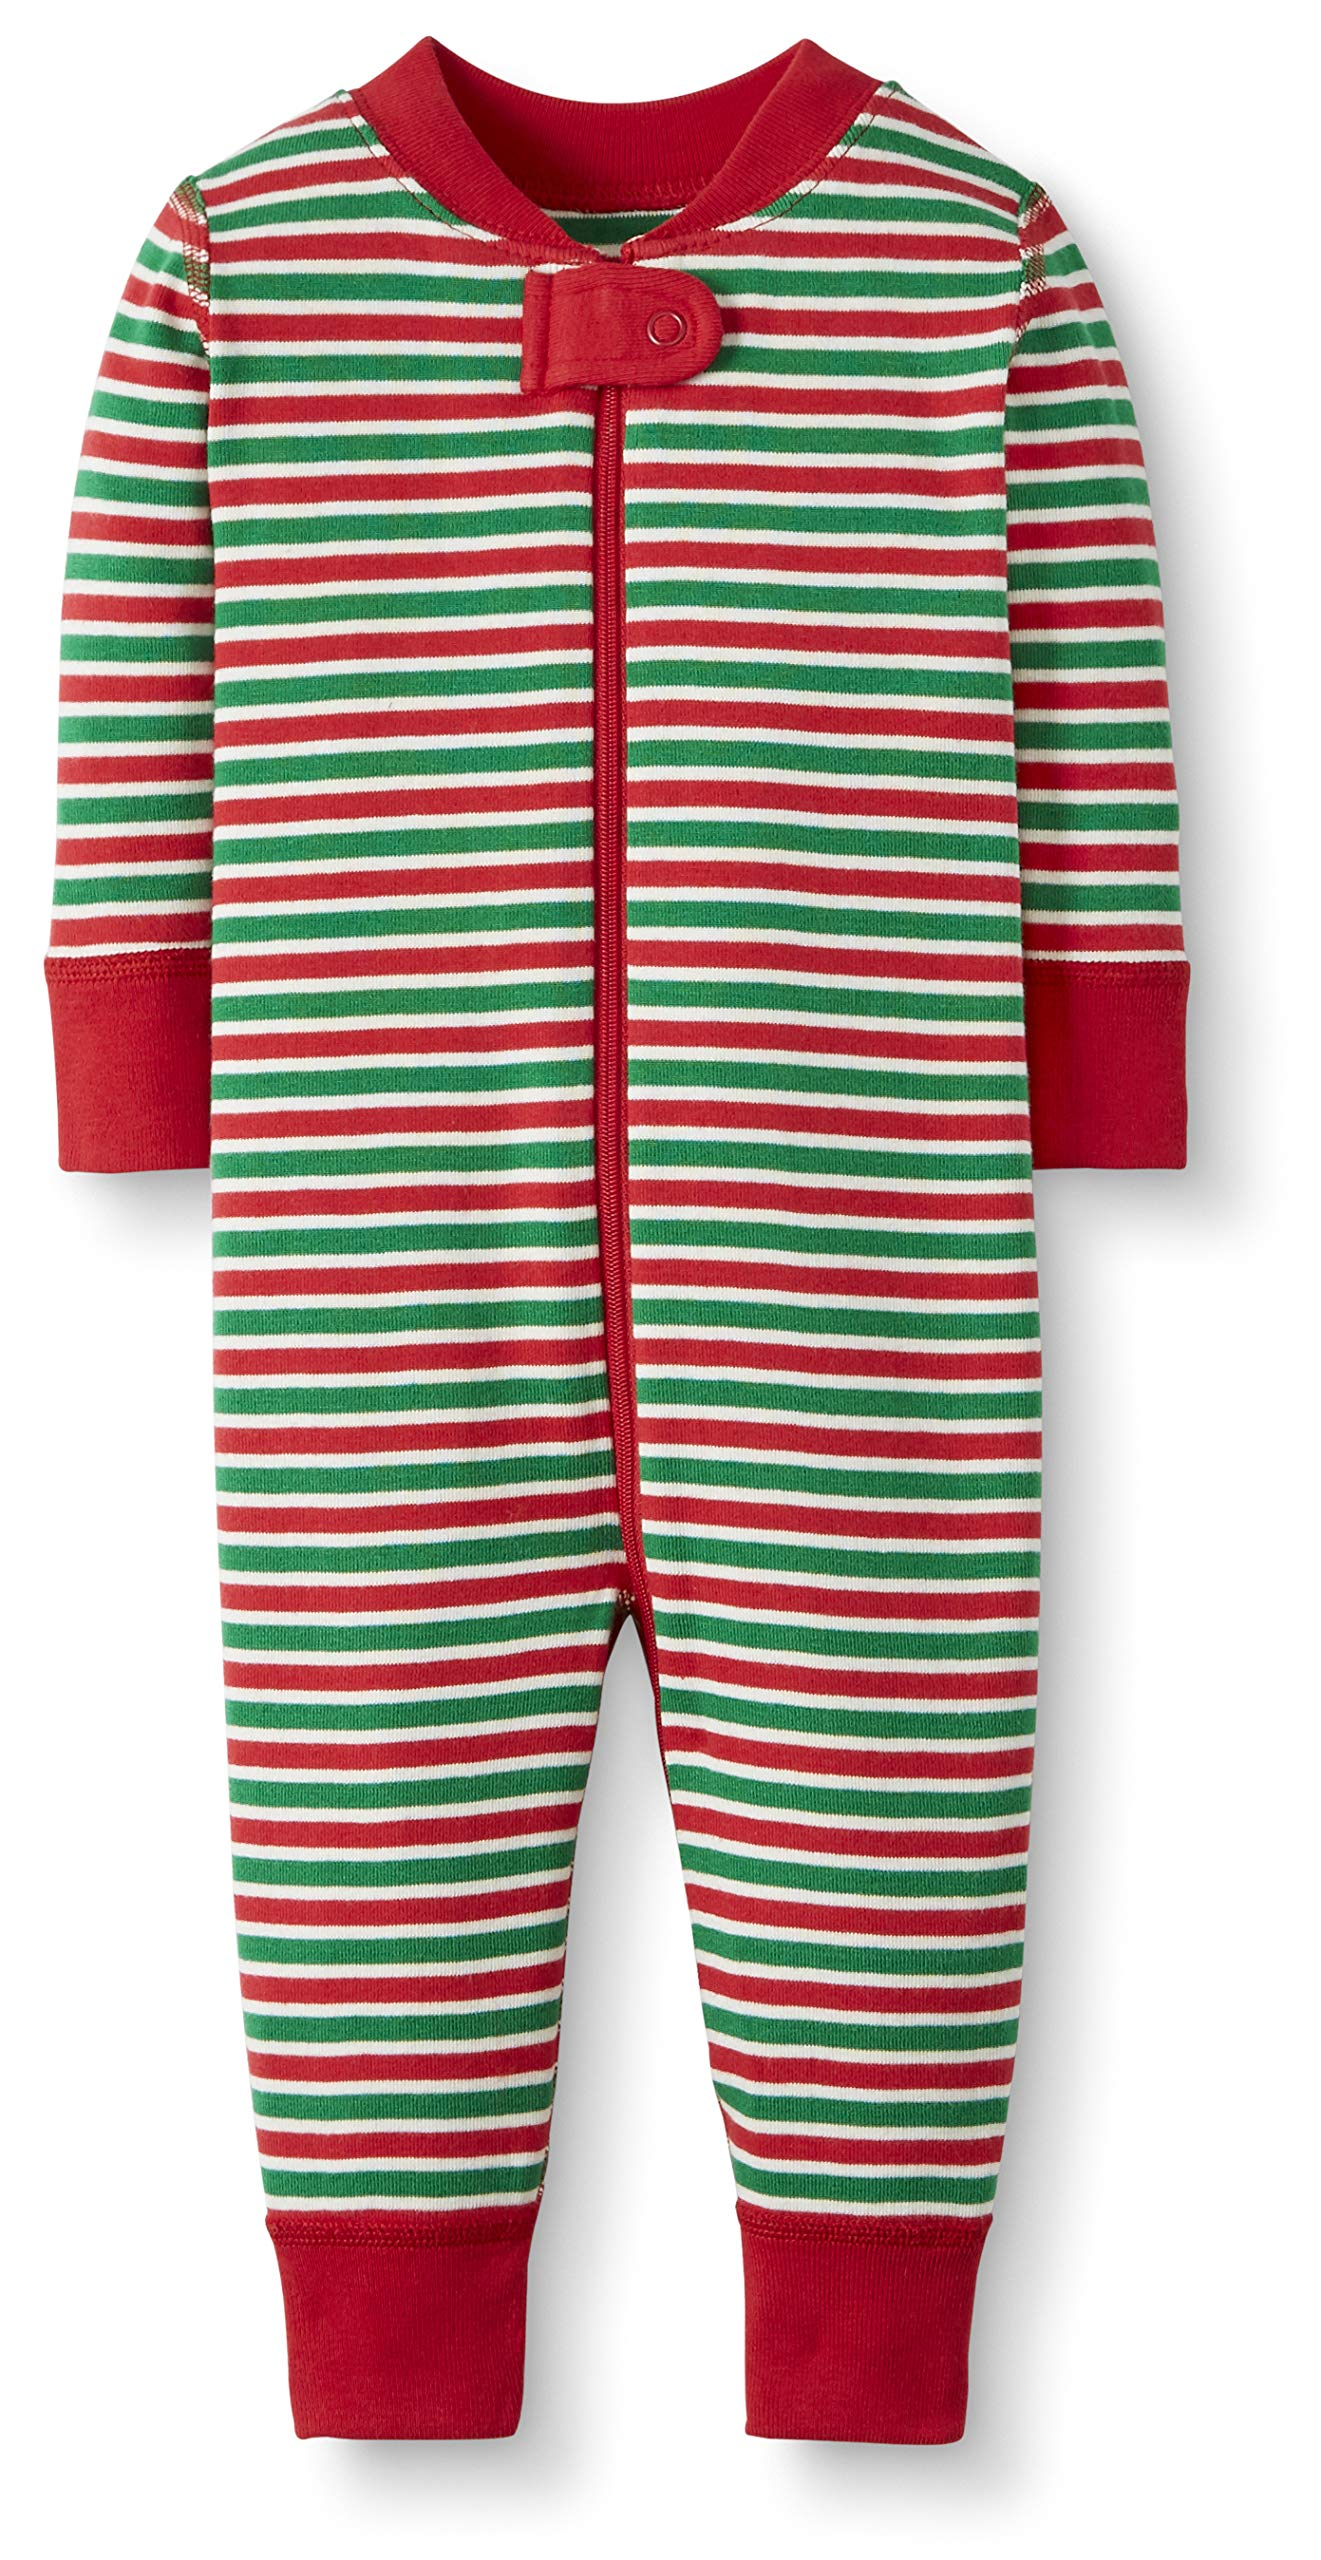 Moon and Back by Hanna Andersson Baby/Toddler Boys' and Girls' One-Piece Organic Cotton Footless Pajamas